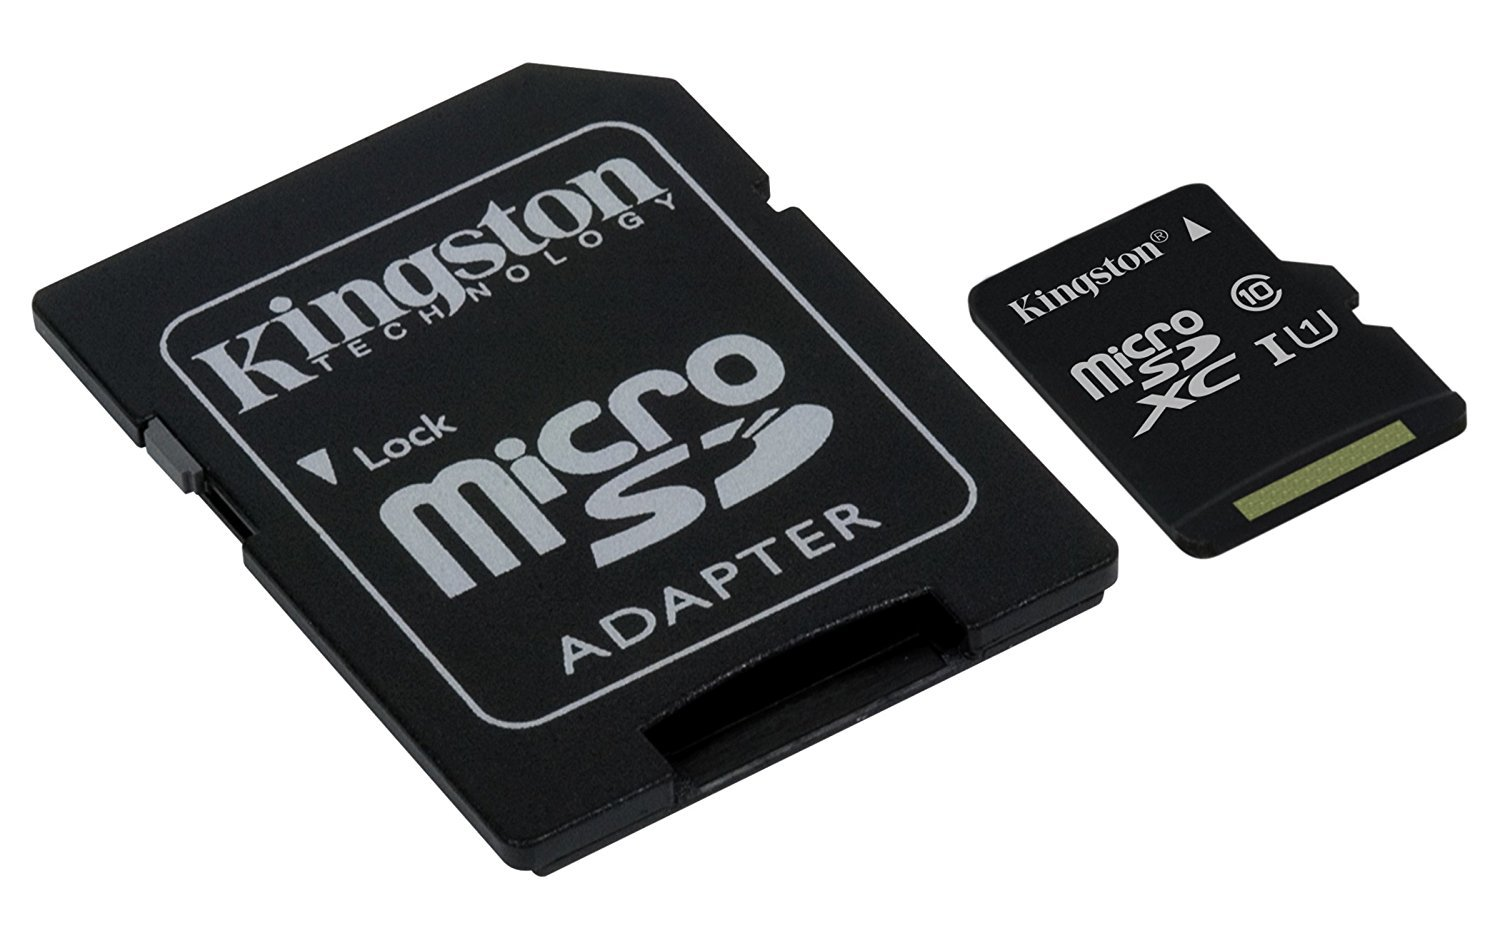 Professional Kingston 256GB TP260 MicroSDXC Card with custom formatting and Standard SD Adapter! (Class 10, UHS-I) by Custom Kingston for LG (Image #1)